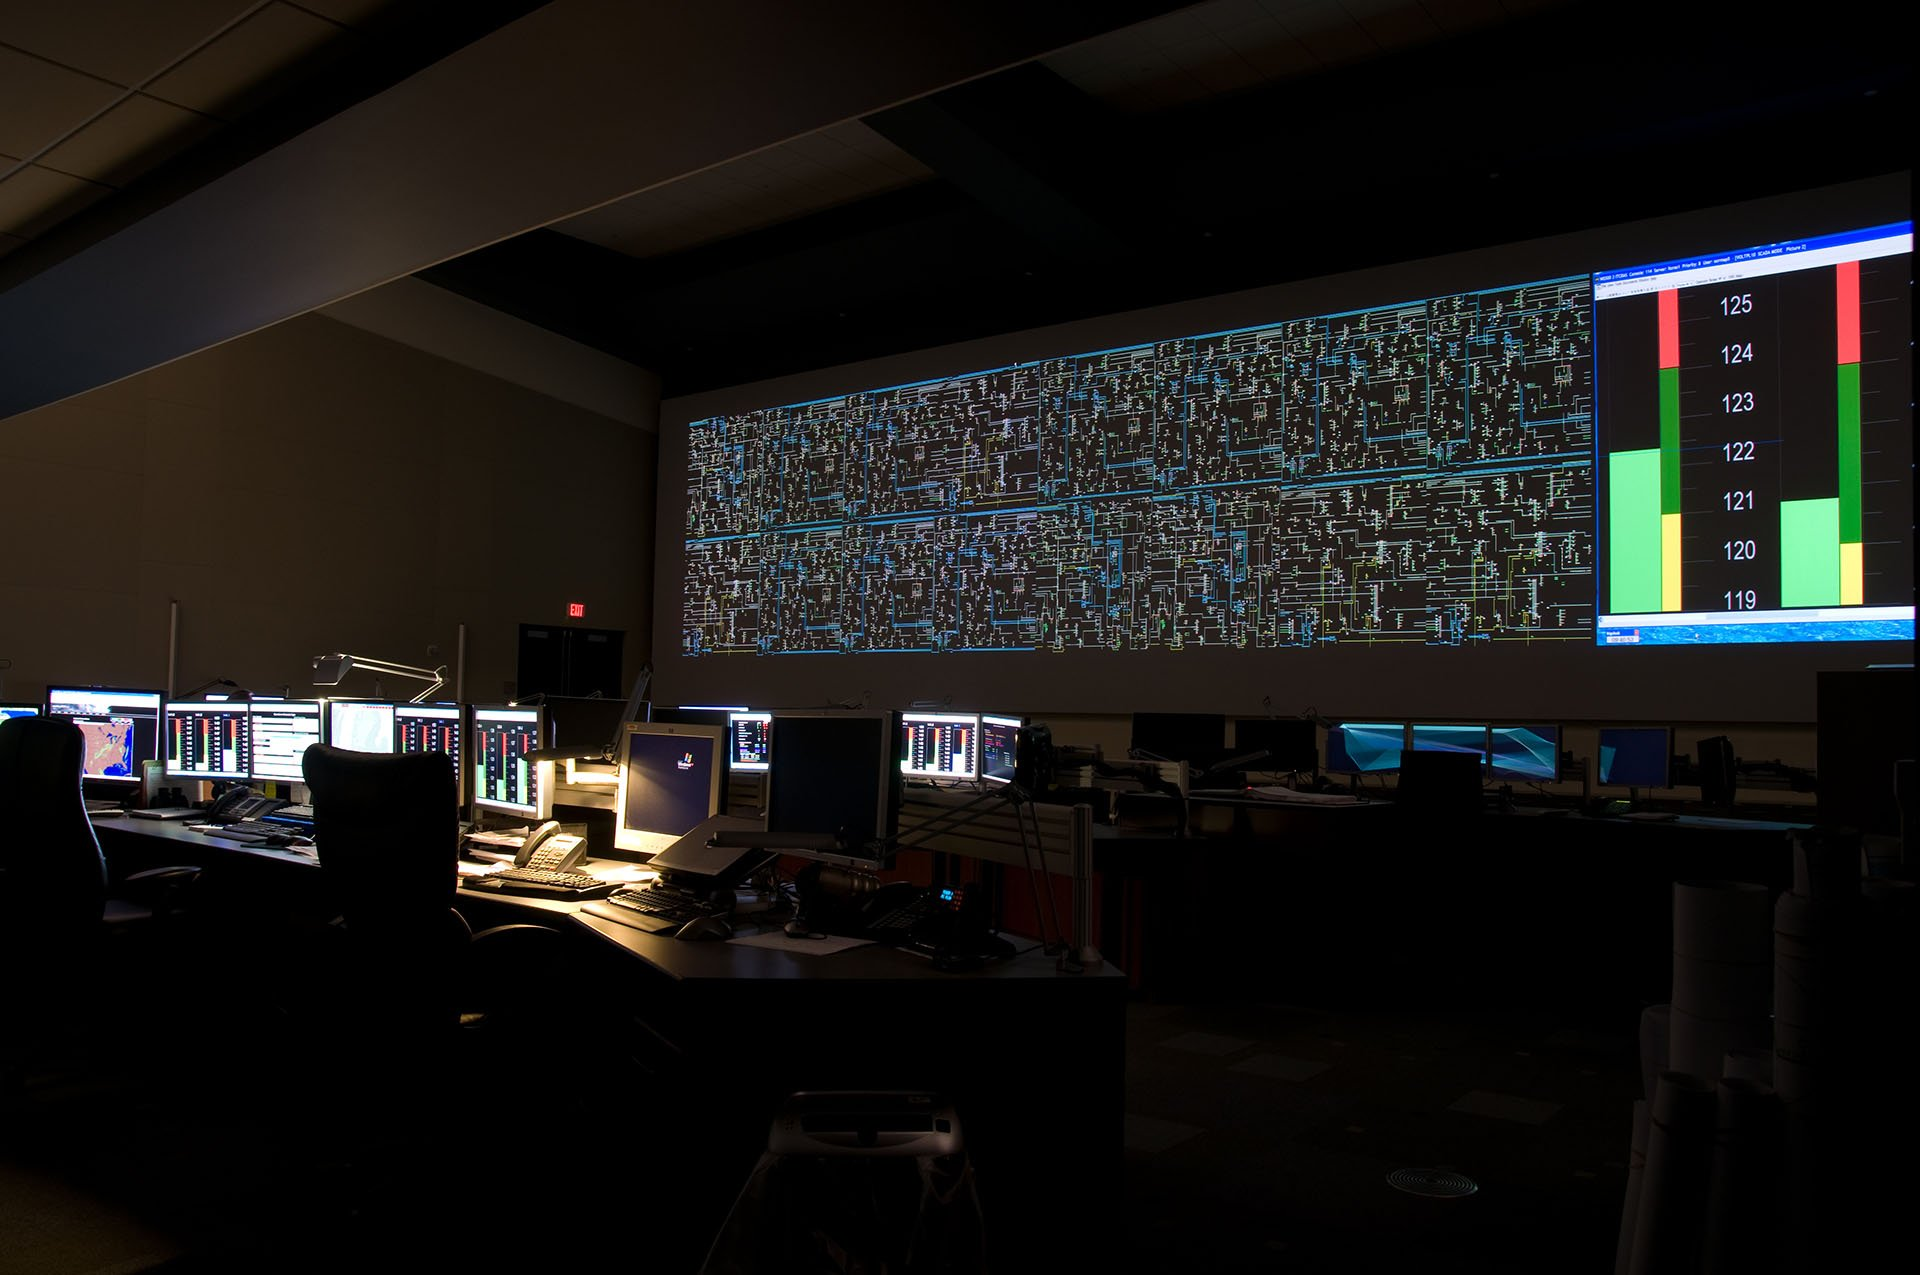 IGI custom command and control room 4K projection